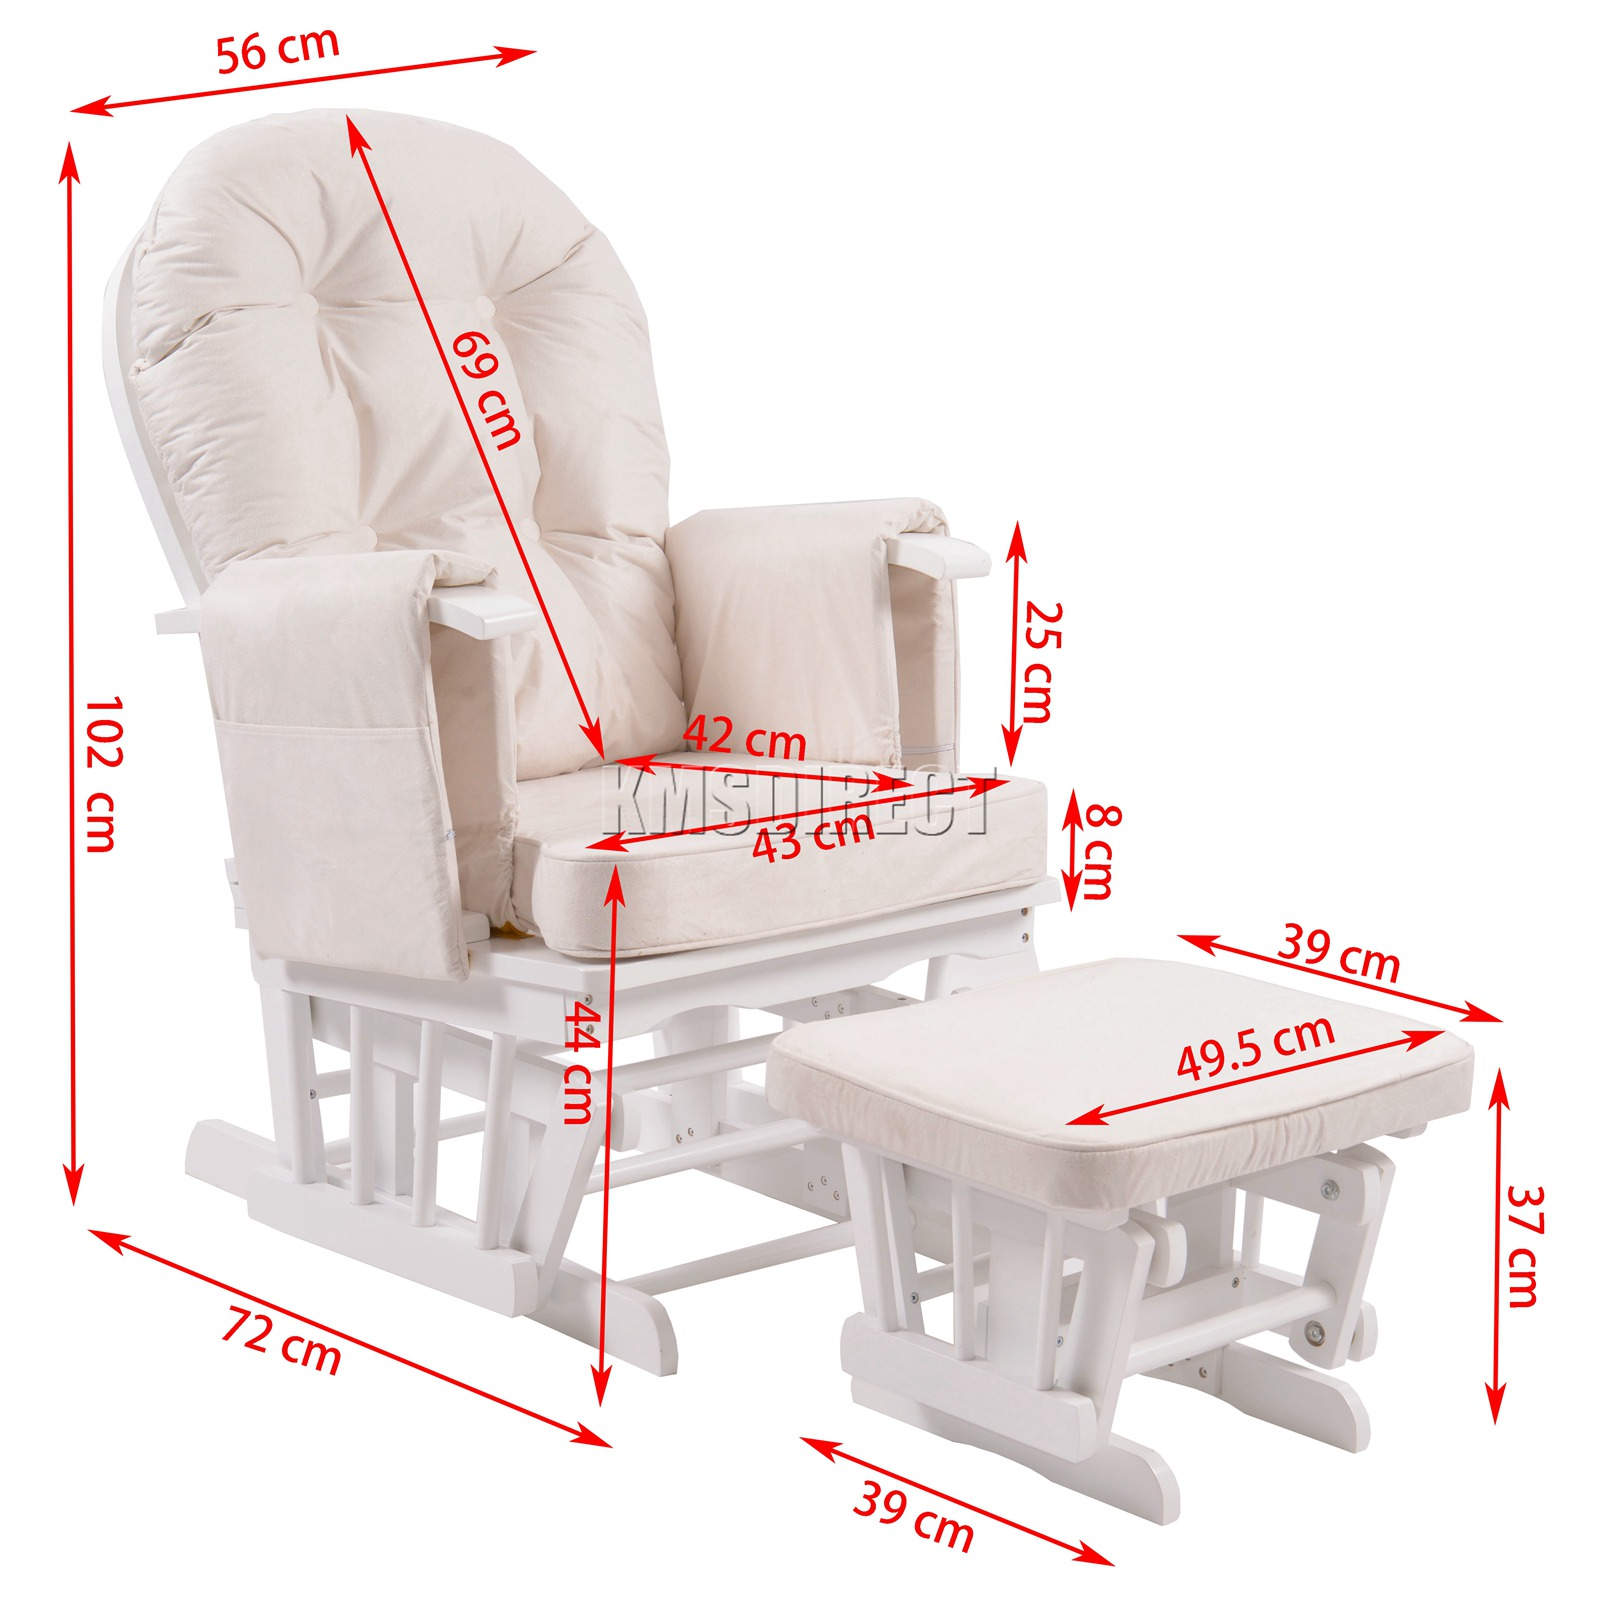 FoxHunter-Nursing-Glider-Maternity-Rocking-Chair-With-Stool-White-Wood-Frame-New miniatuur 29